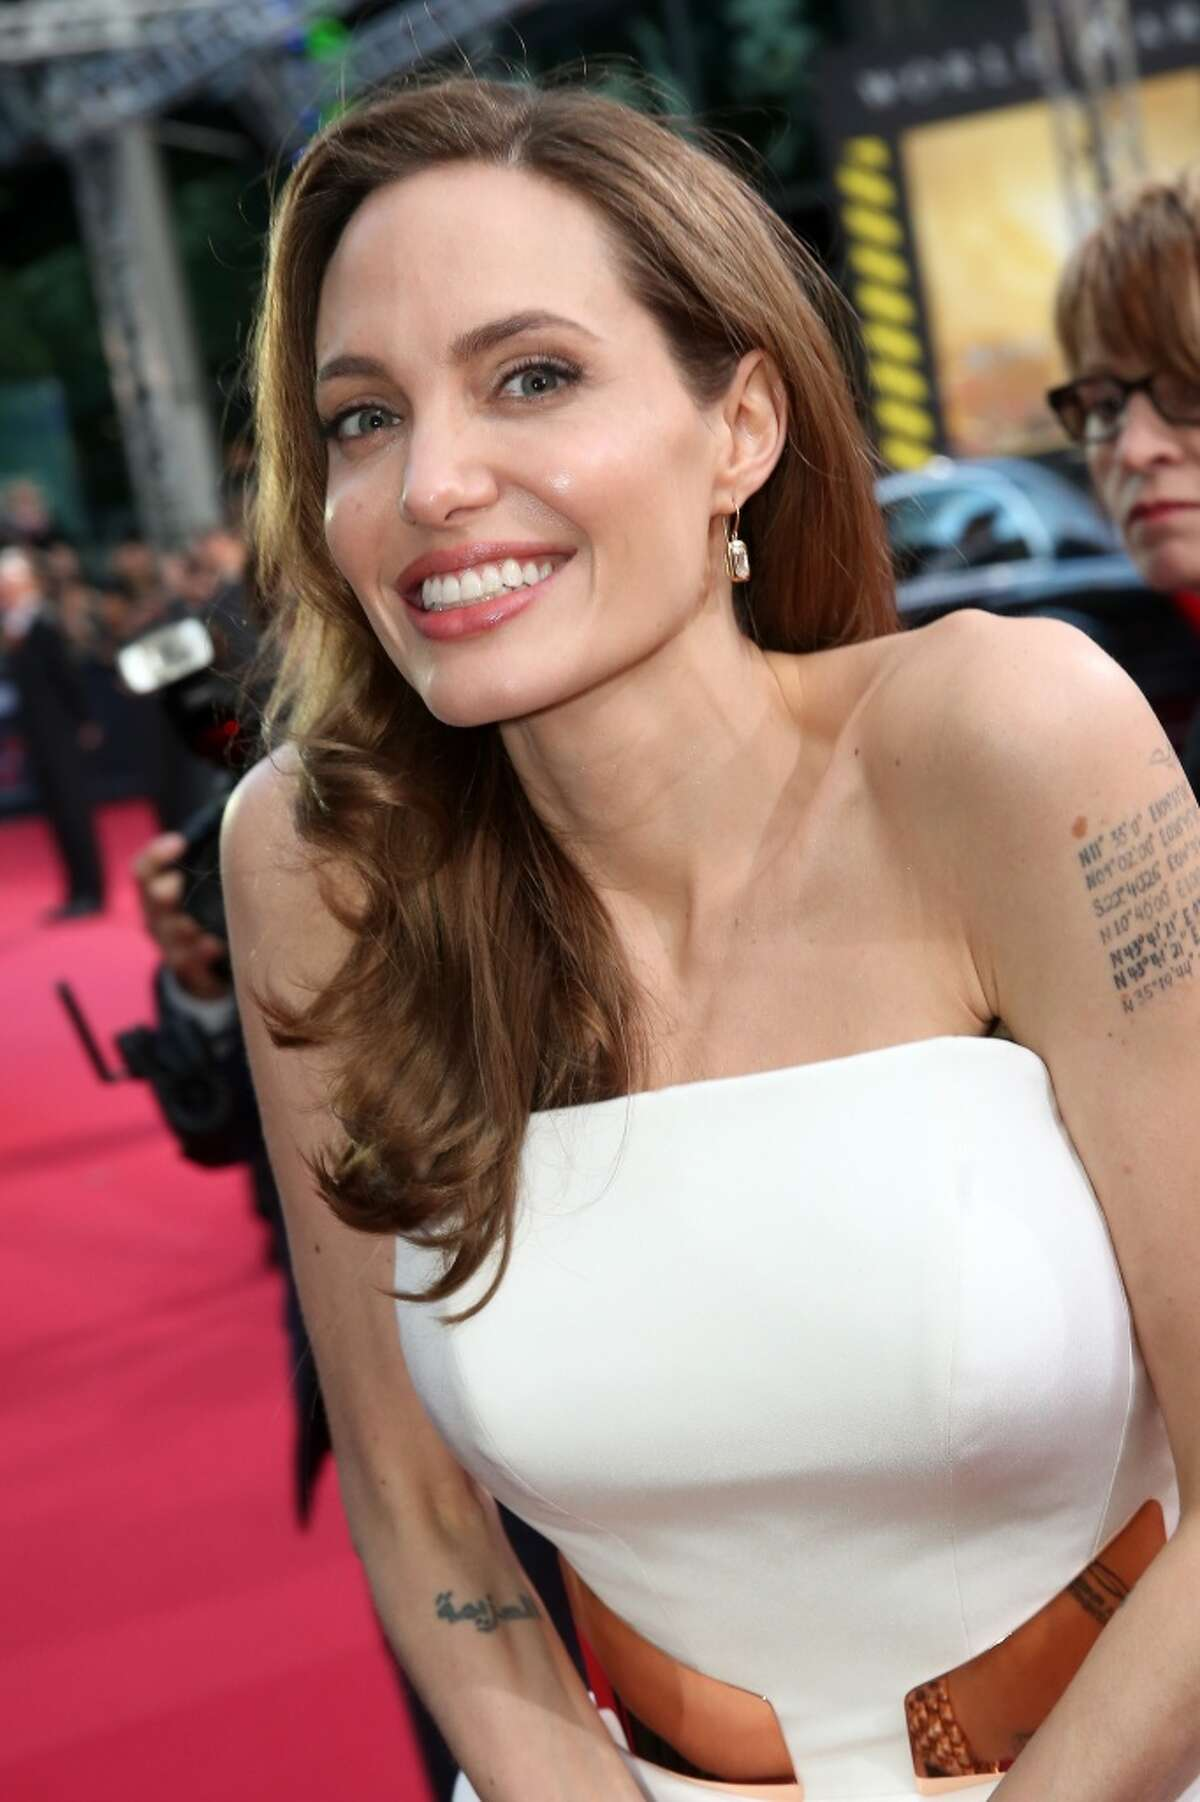 Given the history of breast cancer in her family, Angelina Jolie announced in May 2013 that she had undergone a preventive double mastectomy. A recent study found that when she went public with her medical decision, more women decided to get tested for breast and ovarian cancers.